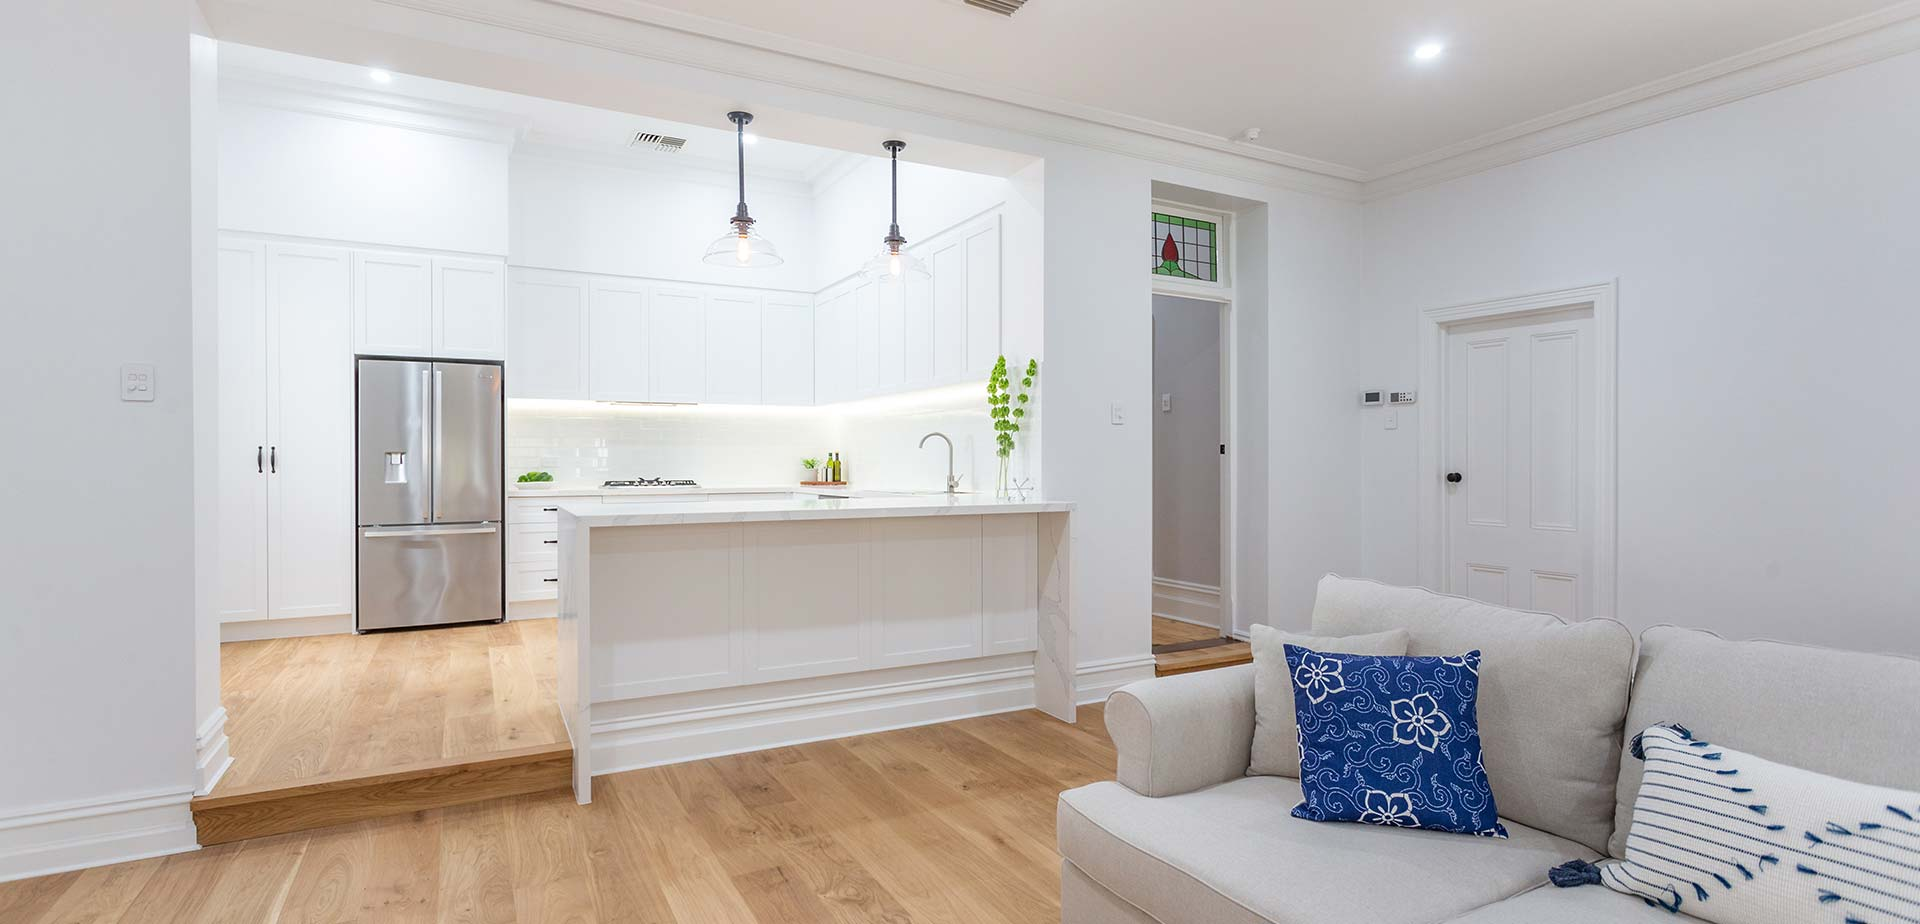 Largs Bay Home Renovation